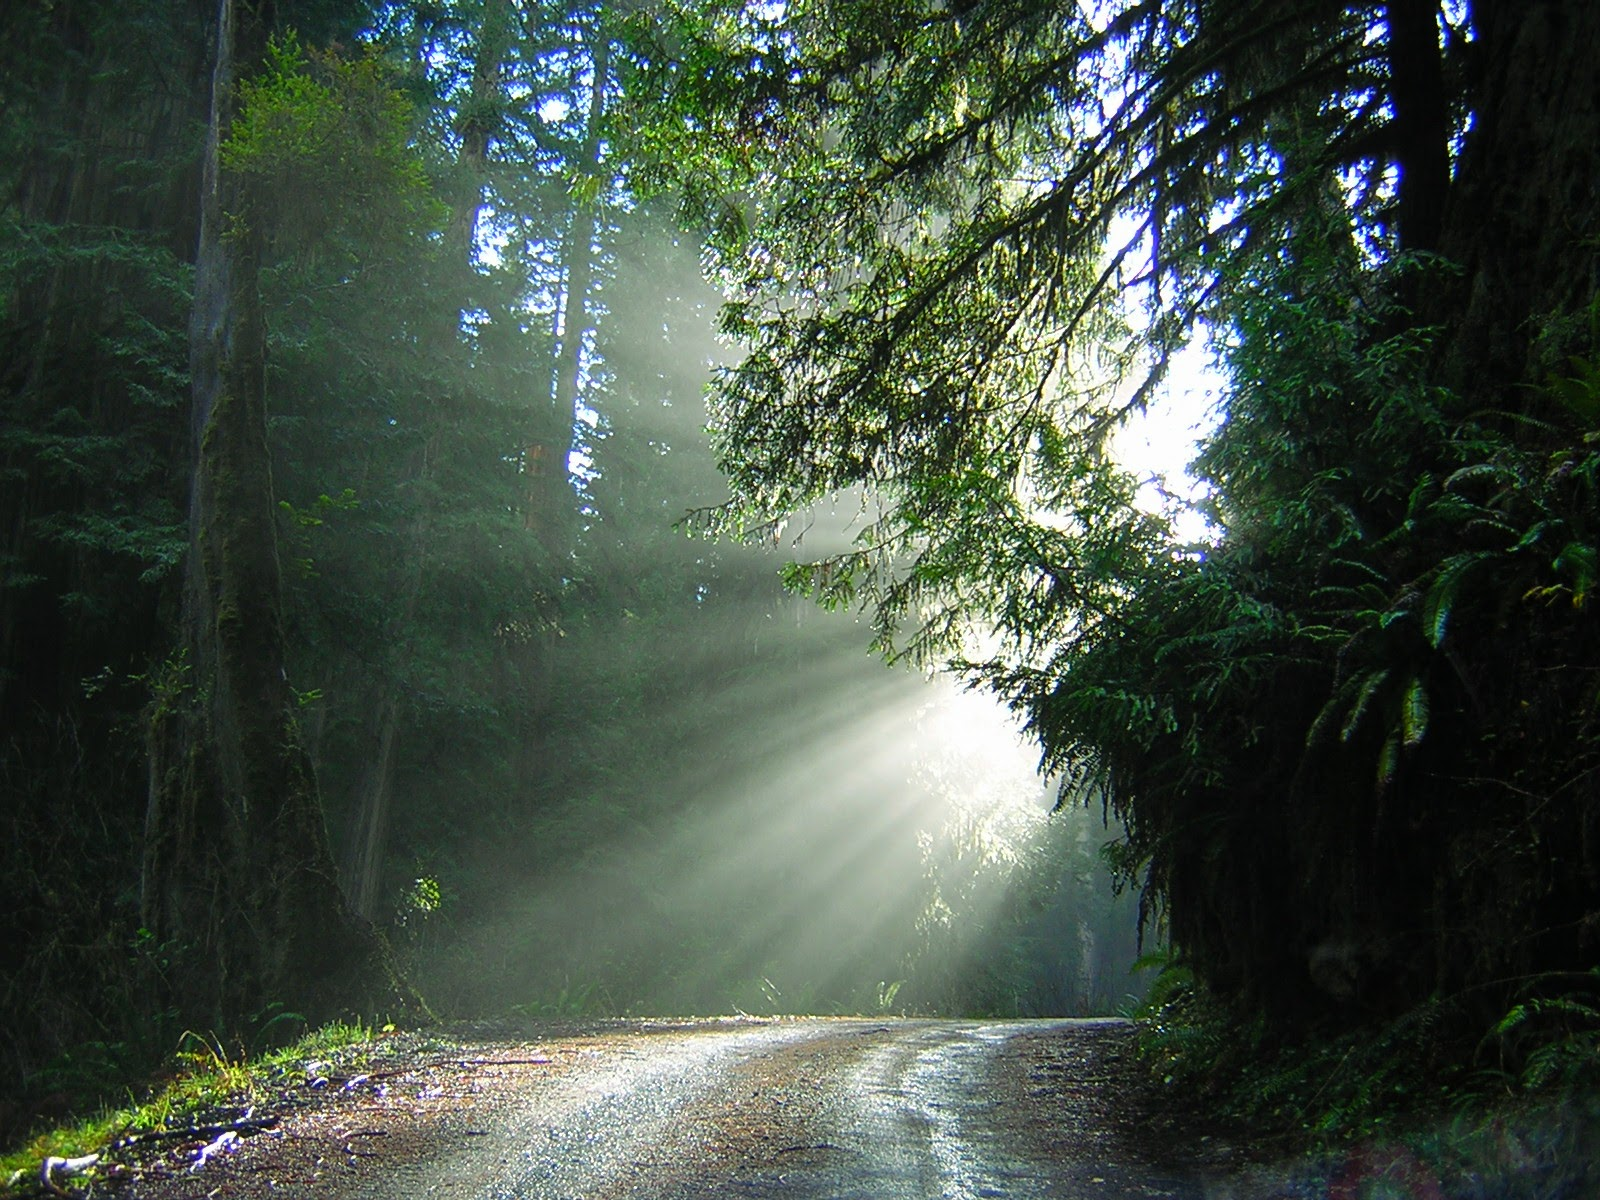 A dirt road in a deep forest with the sun filtering in behind the trees. Green trees and ferns line the sides of the road